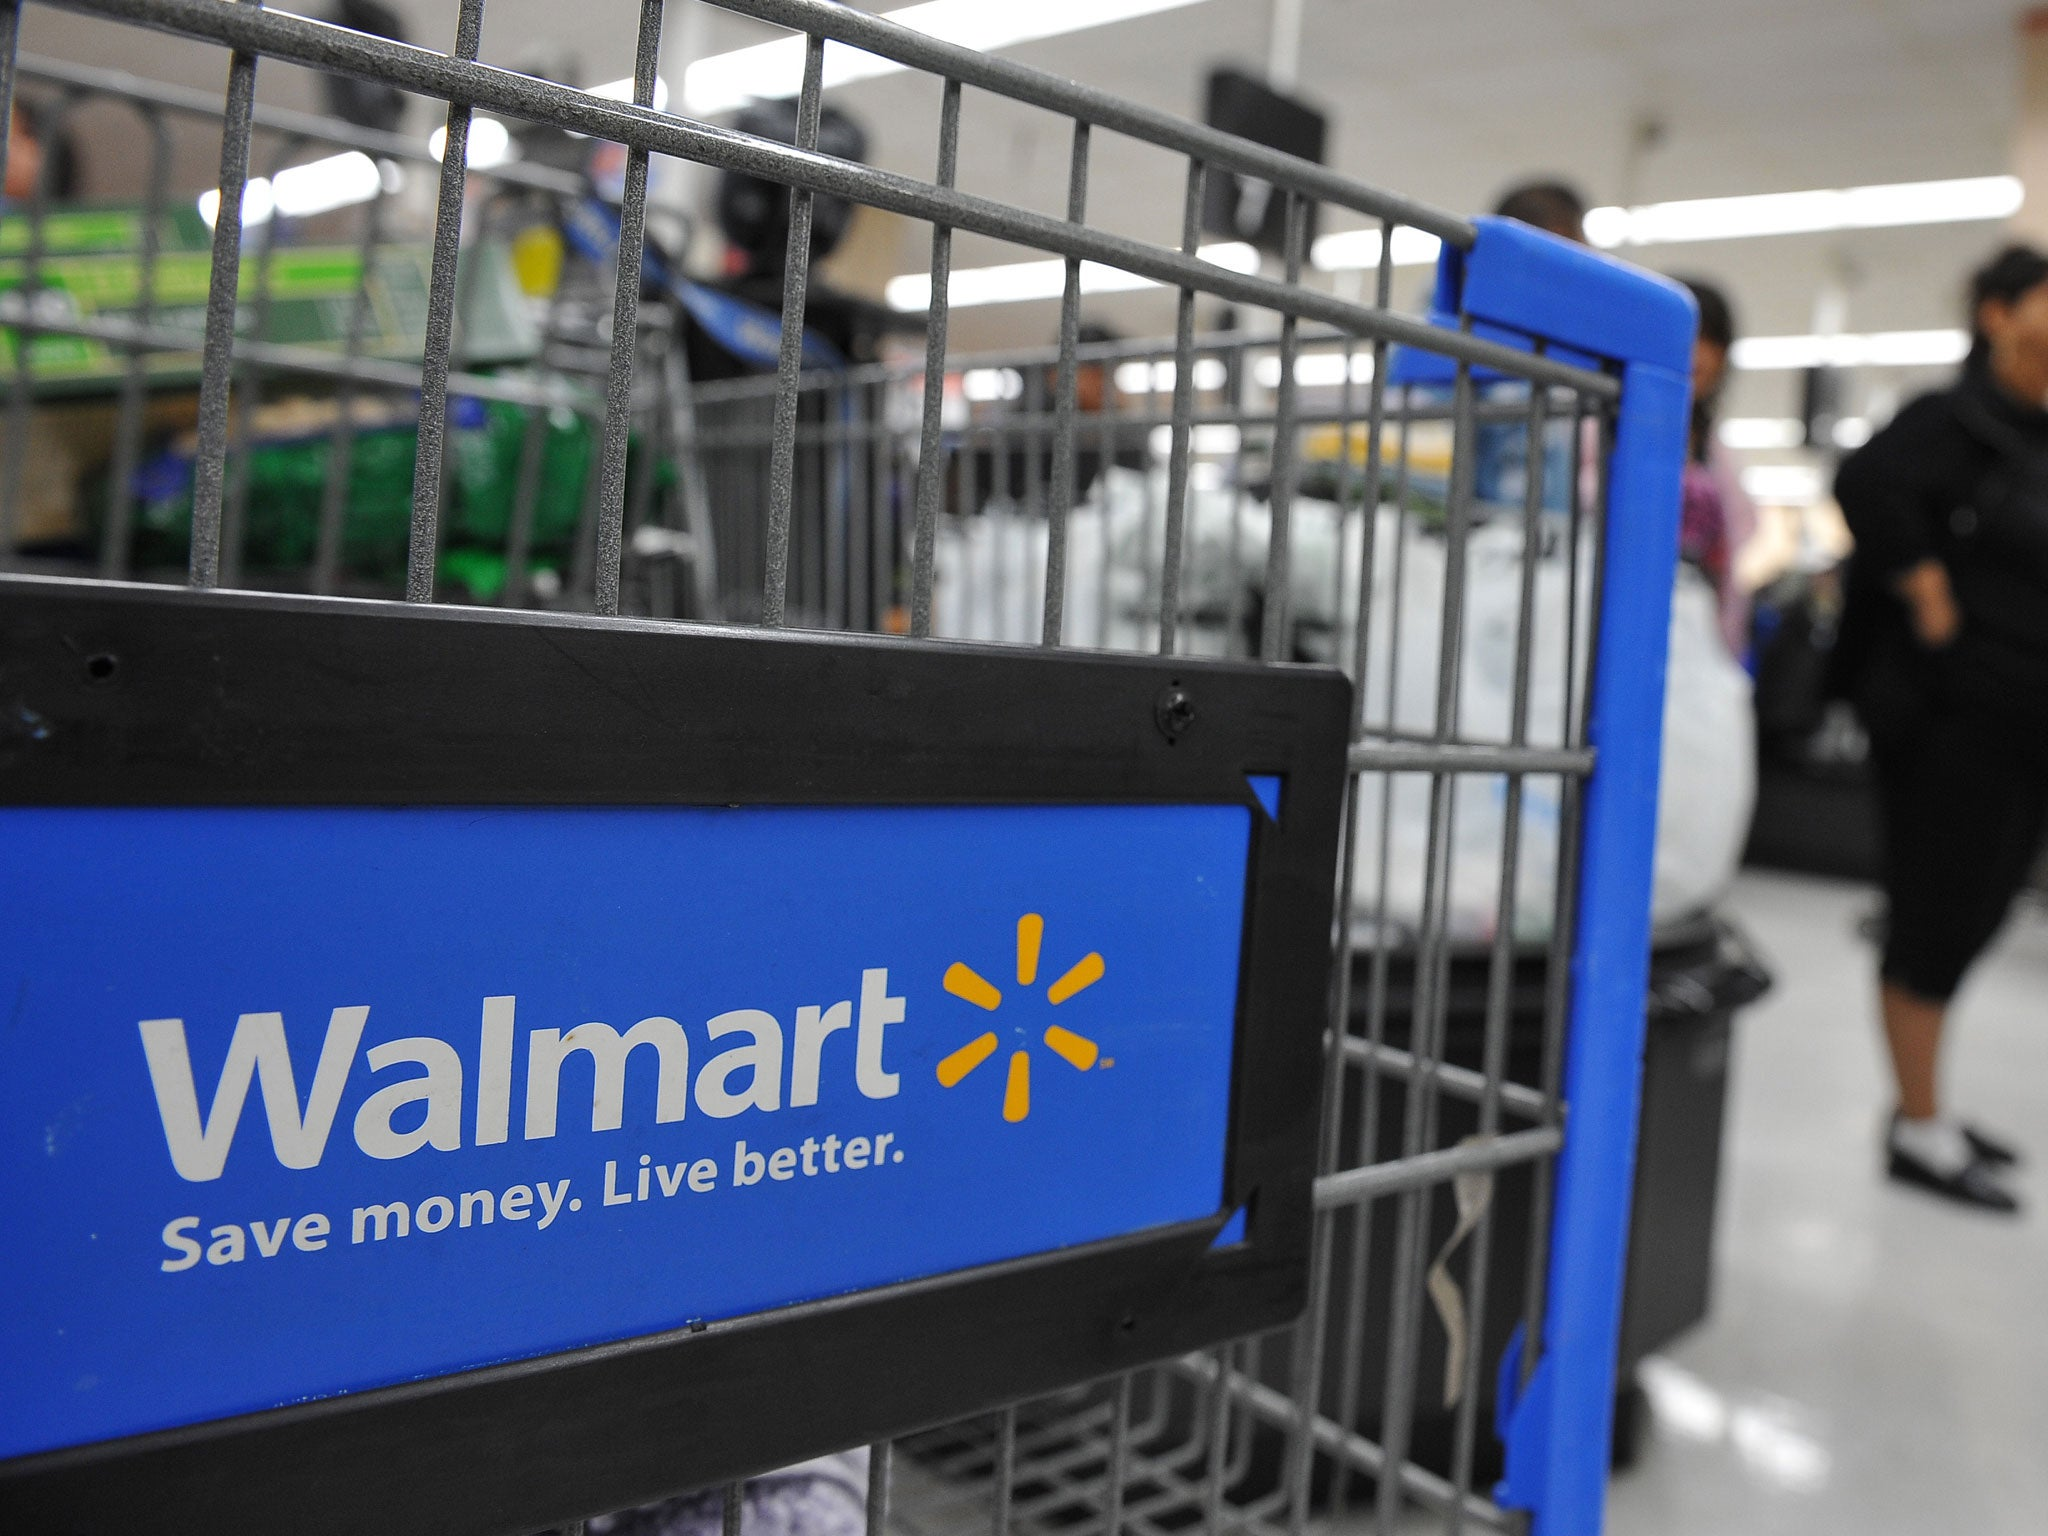 wal mart the high cost of low Wal-mart: the high cost of low price directed by robert greenwald a searing expose of the greed and systemic poor treatment of its workers by the largest corporation in the world.